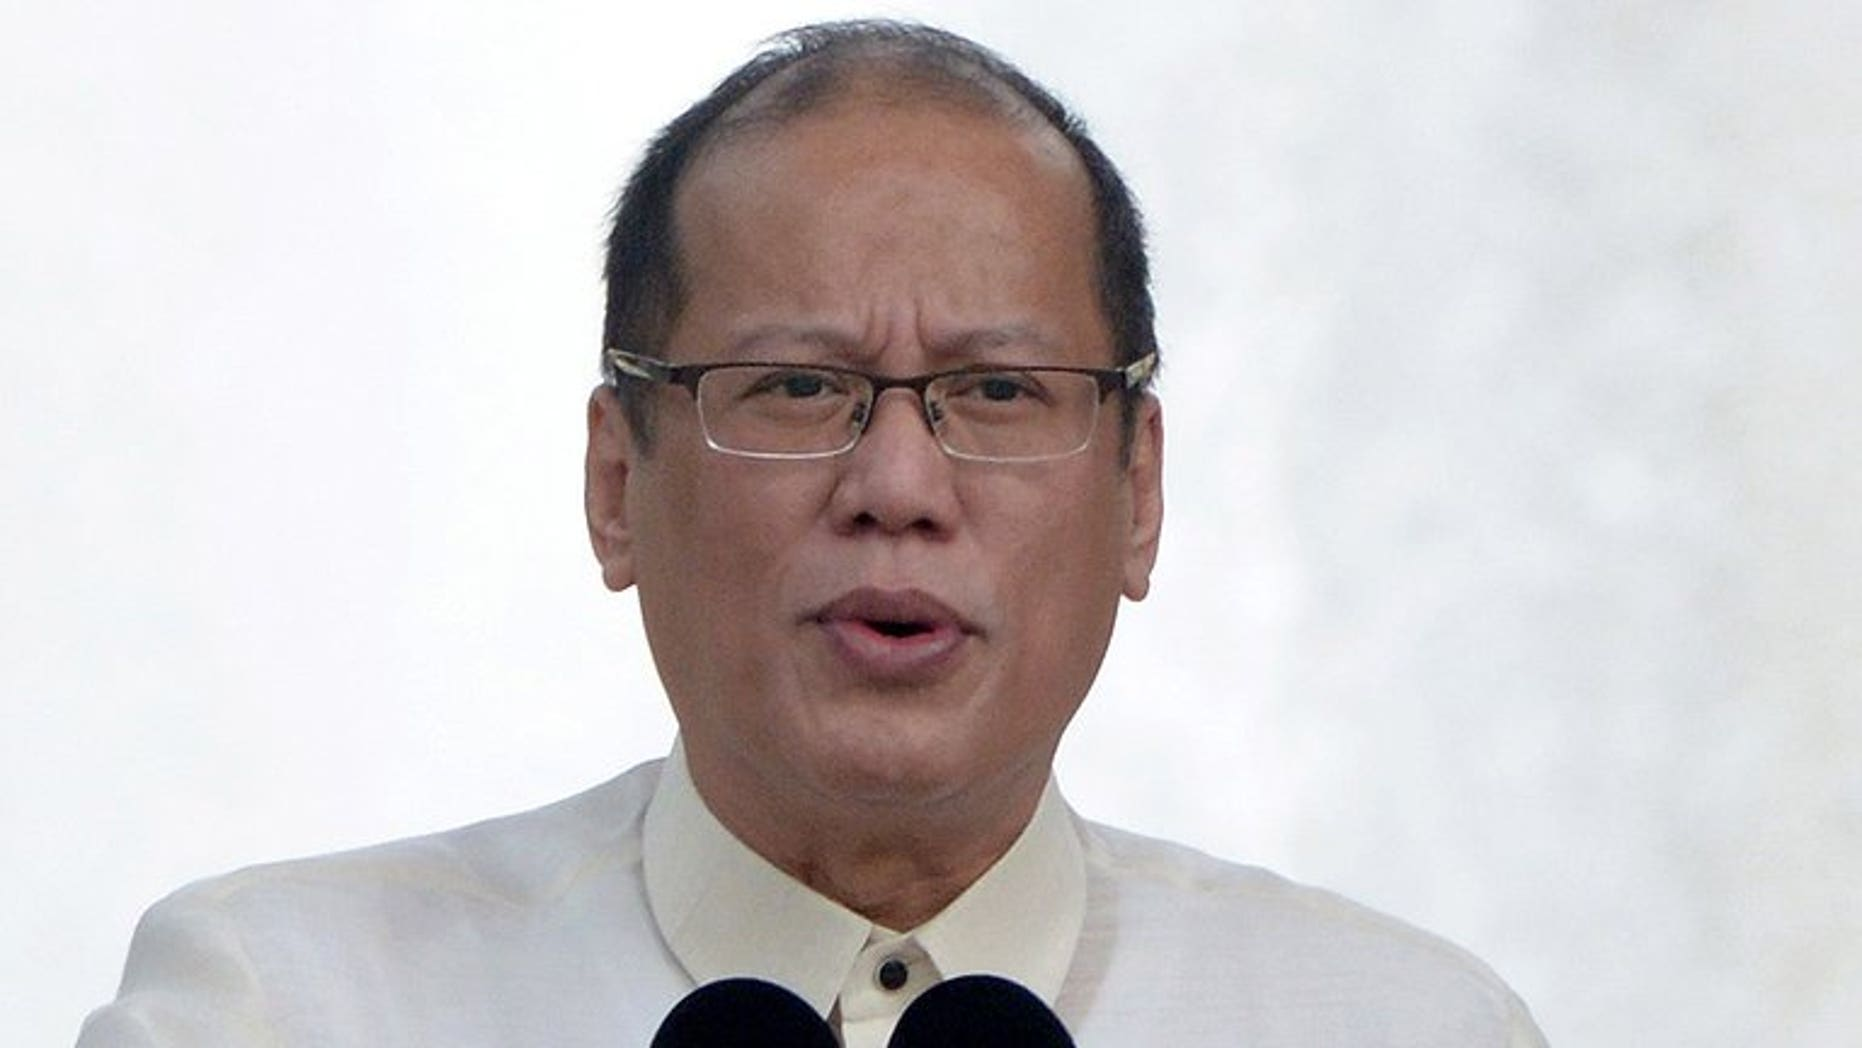 Philippine President Benigno Aquino addresses the crowd during a ceremony in Manila, on June 12, 2013. Aquino -- who previously survived a deadly assassination attempt during his struggle to the top of bare-knuckle Philippine politics -- has been laid low by his allergy to flowers.